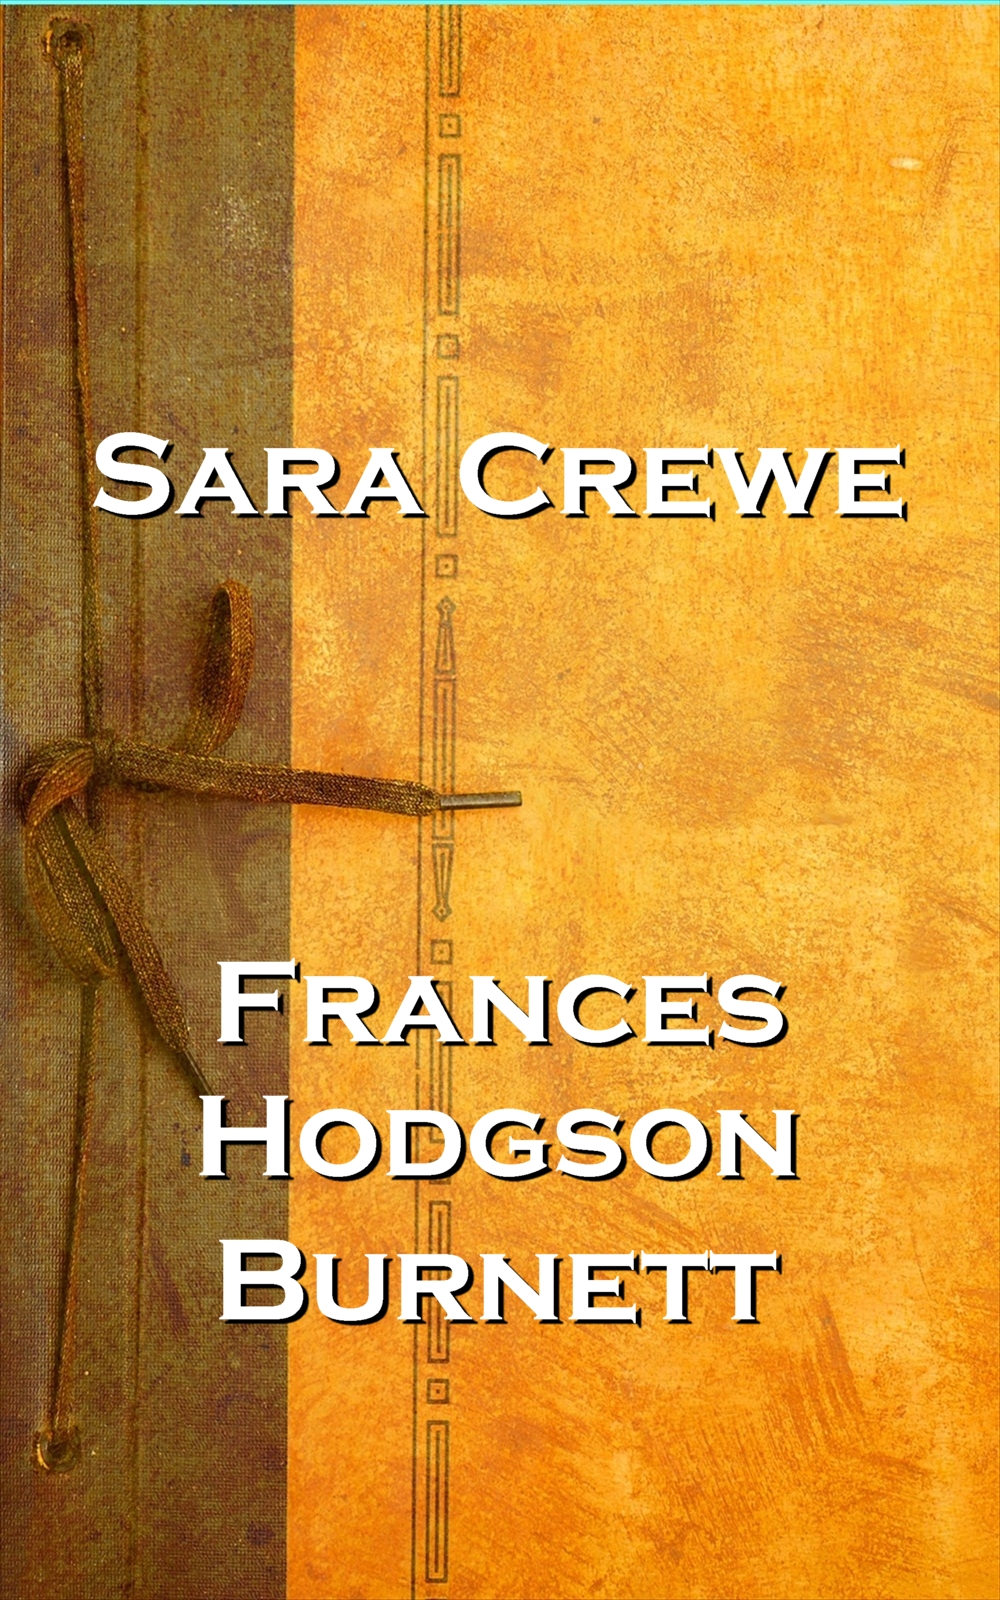 Sara Crewe, By Frances Hodgson Burnett